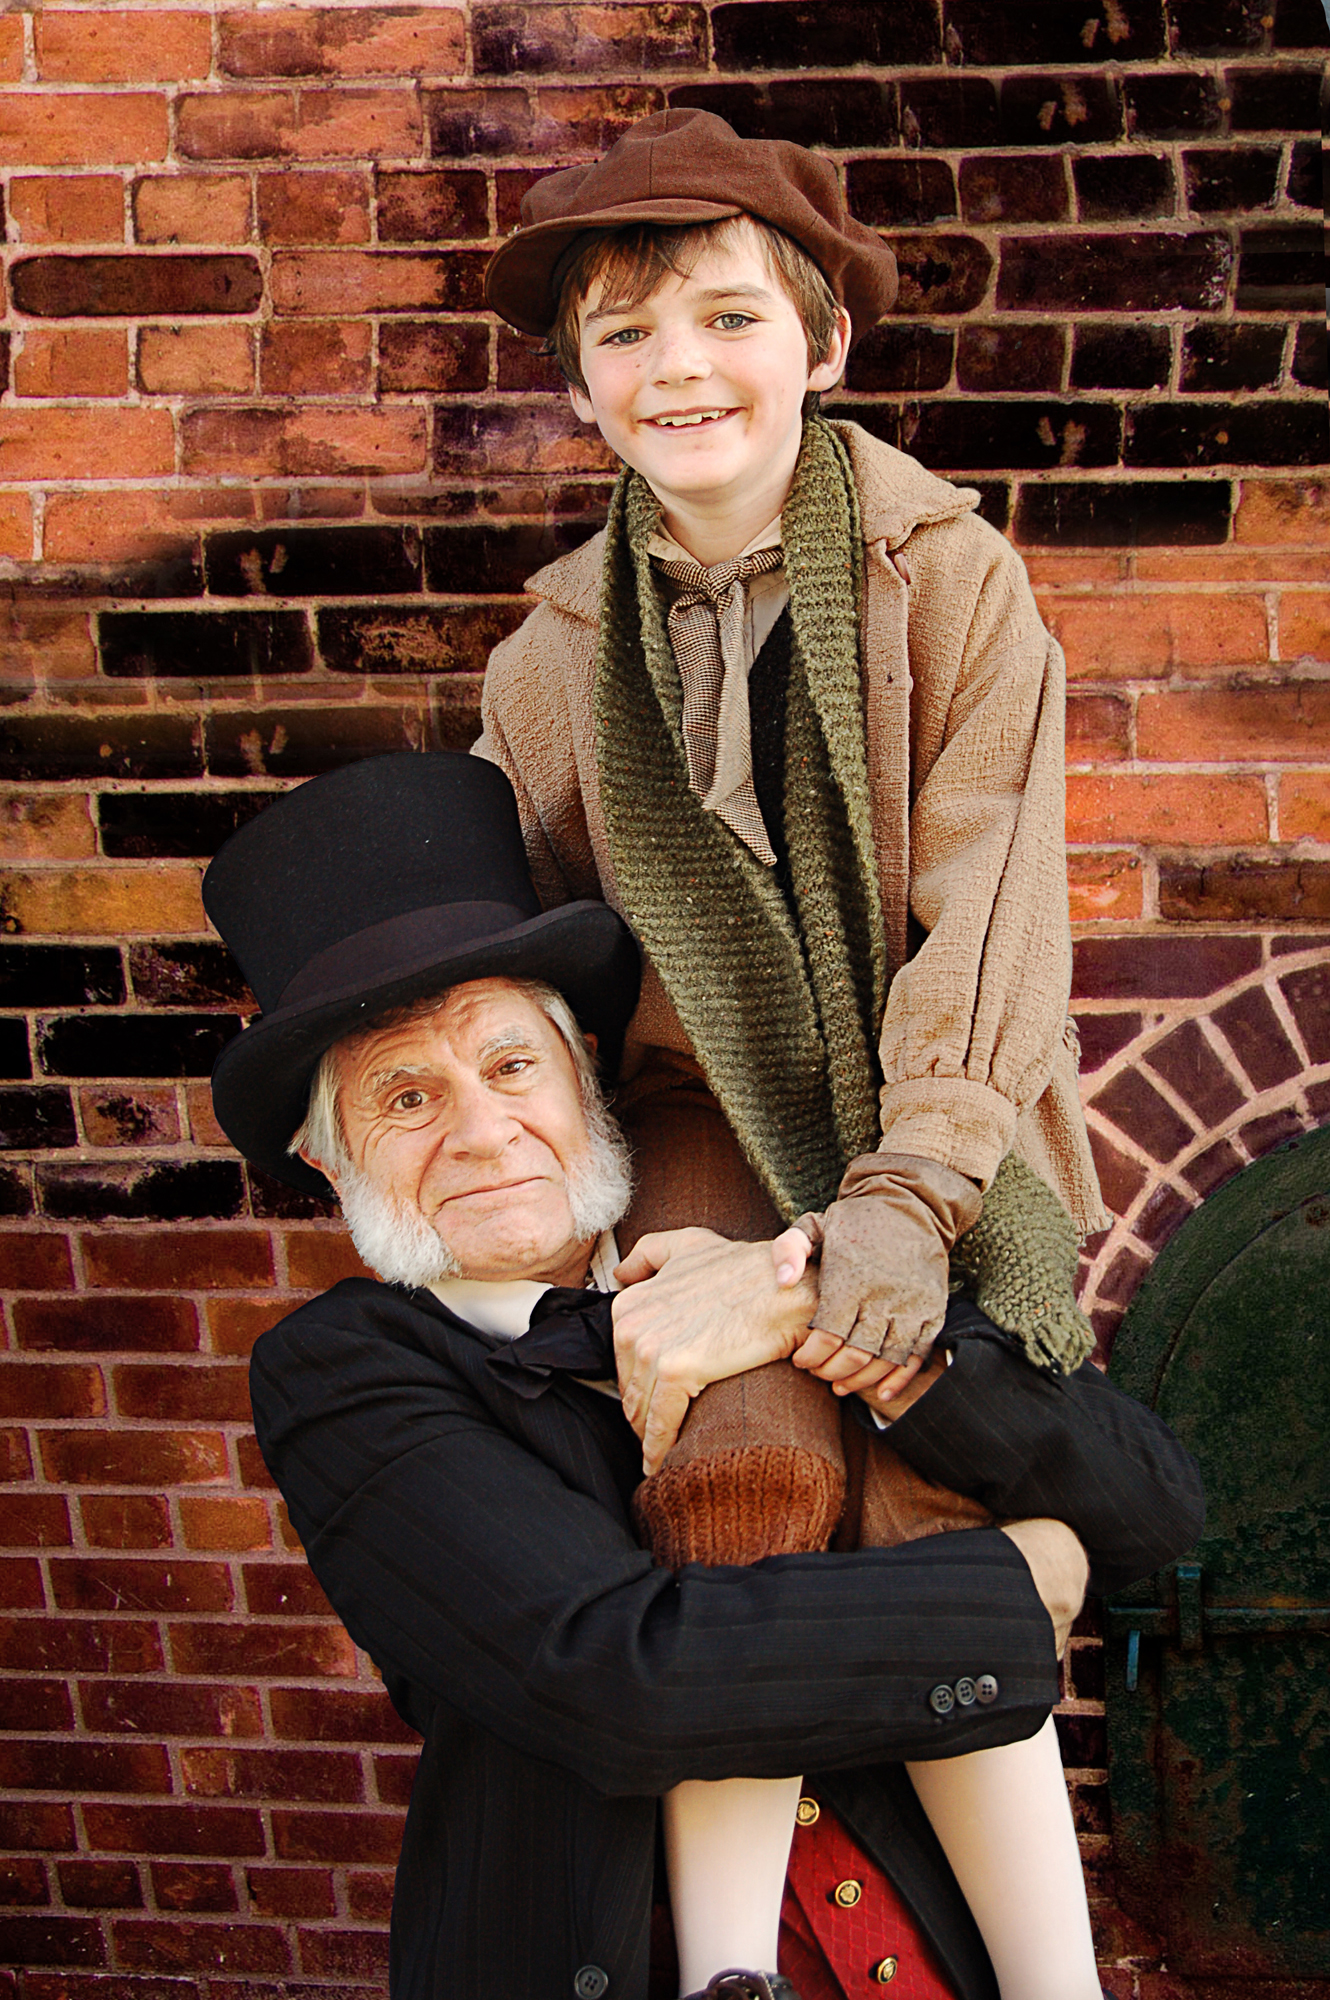 (l to r): Richard Farrell as Scrooge and Everett Meckler as Tiny Tim in San Jose Rep&#39;s A Christmas Carol.